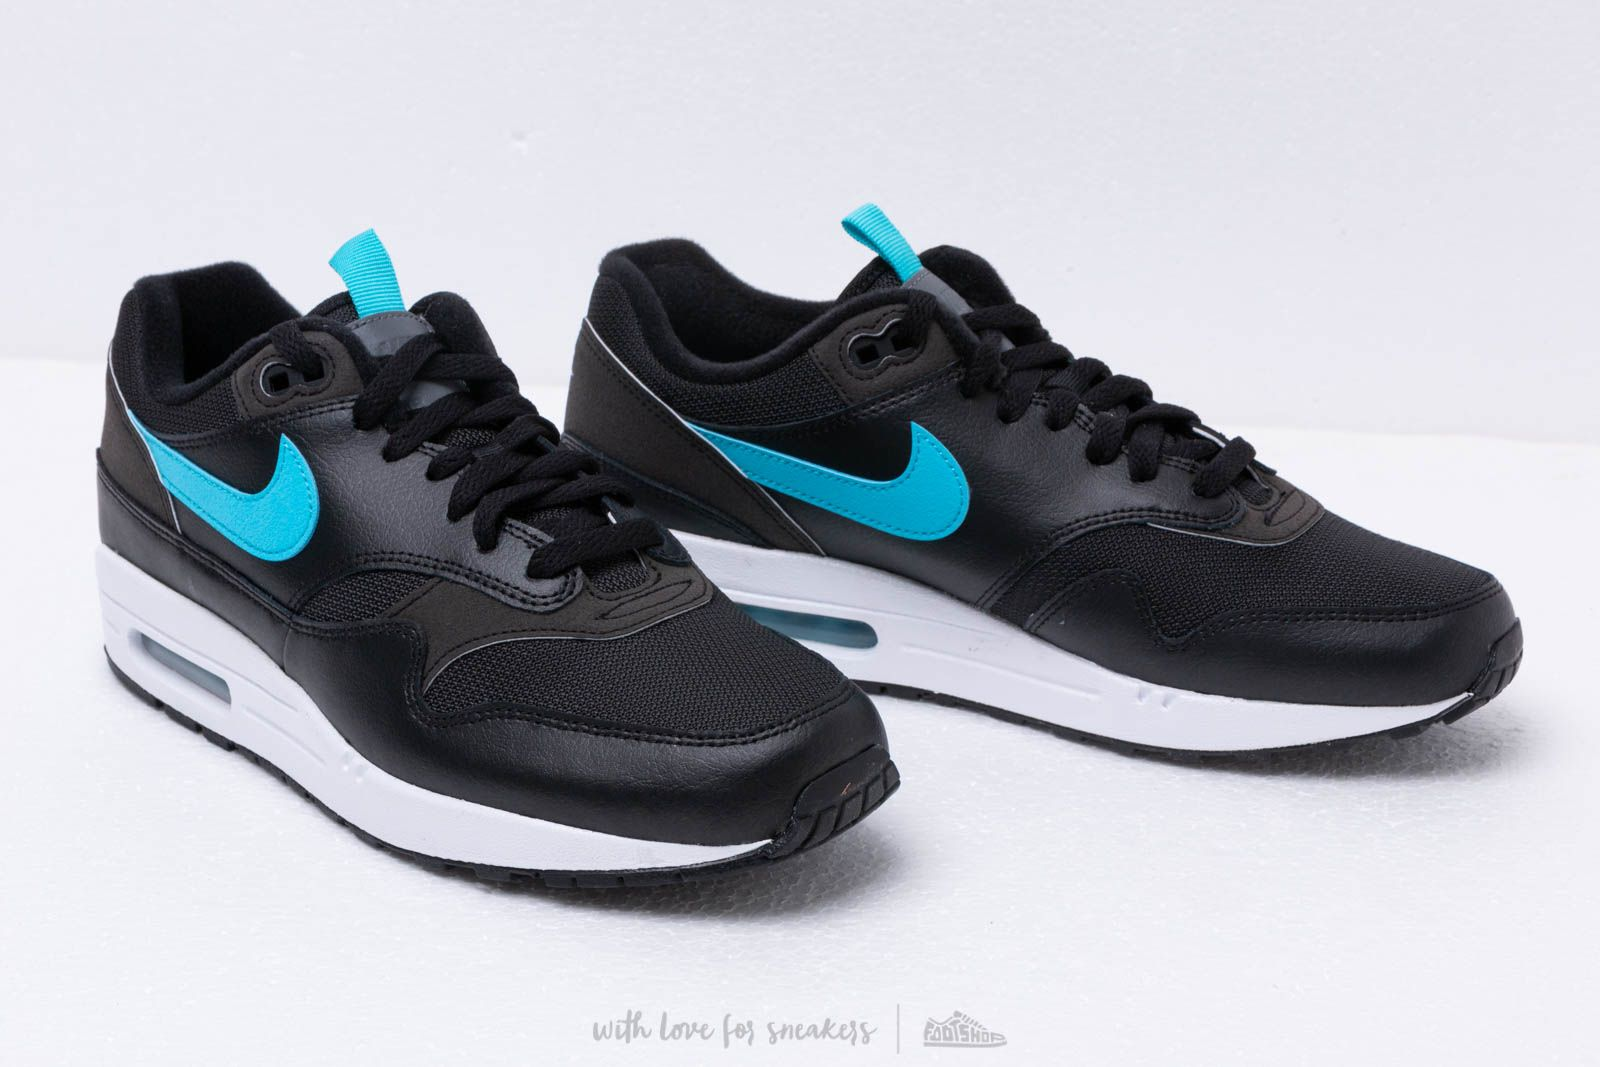 salida Independiente diseño  Men's shoes Nike Air Max 1 Se Black/ Blue Fury